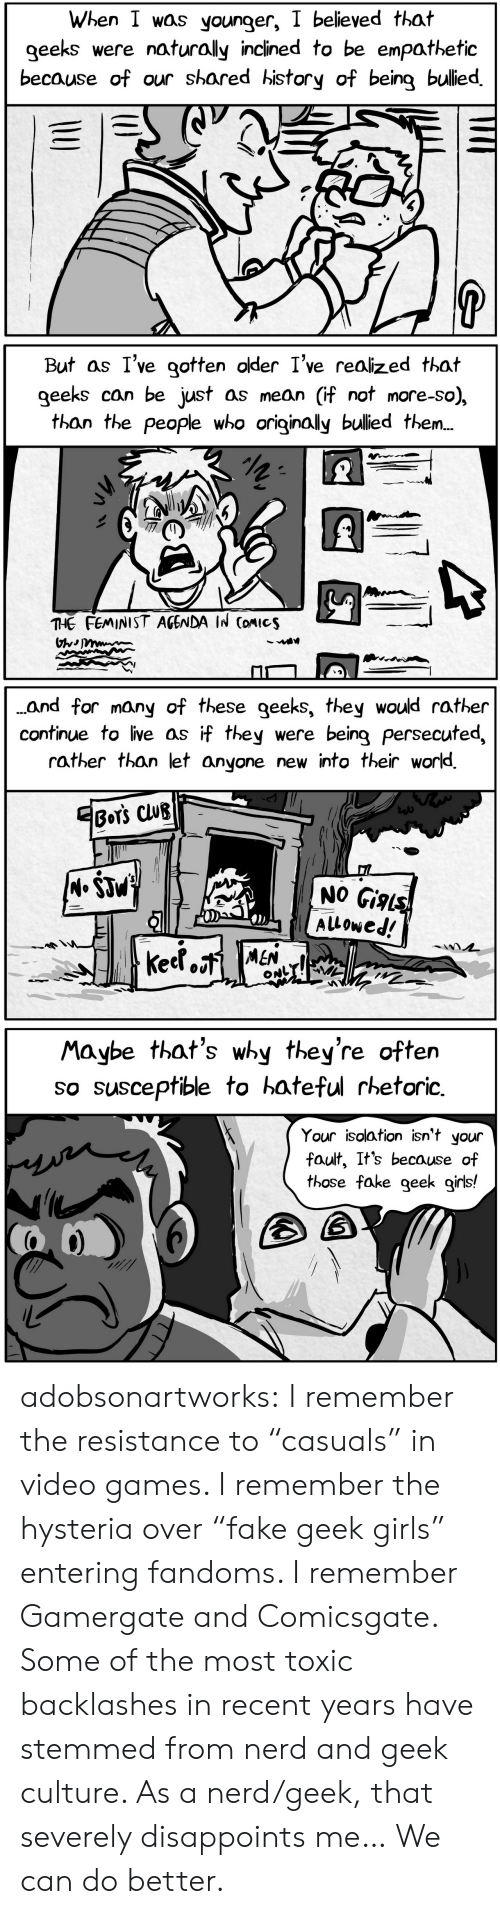 """hateful: When I was younger, I believed that  geeks  were naturally inclined to be enpathetic  because of our shared history of being bulied  P  U   But as I've gotten older I've realized that  geeks can be just as mean (if not more-so),  than the people who originally bulied the..  THE FEMINIST AGENDA IN CoMIcs   ..and for many of these geeks, they would rather  continue to live as if they  rather than let anyone new into their world  were being persecuted,  EBOT'S CLUB  (M.$JM  NO Gials  Alowed!  keetoiMEN  ONL   Maybe that's why they're often  so susceptible to hateful rhetoric  Your isolation isn't your  fault, It's because of  those fake geek girls! adobsonartworks:  I remember the resistance to """"casuals"""" in video games. I remember the hysteria over """"fake geek girls"""" entering fandoms. I remember Gamergate and Comicsgate. Some of the most toxic backlashes in recent years have stemmed from nerd and geek culture. As a nerd/geek, that severely disappoints me… We can do better."""